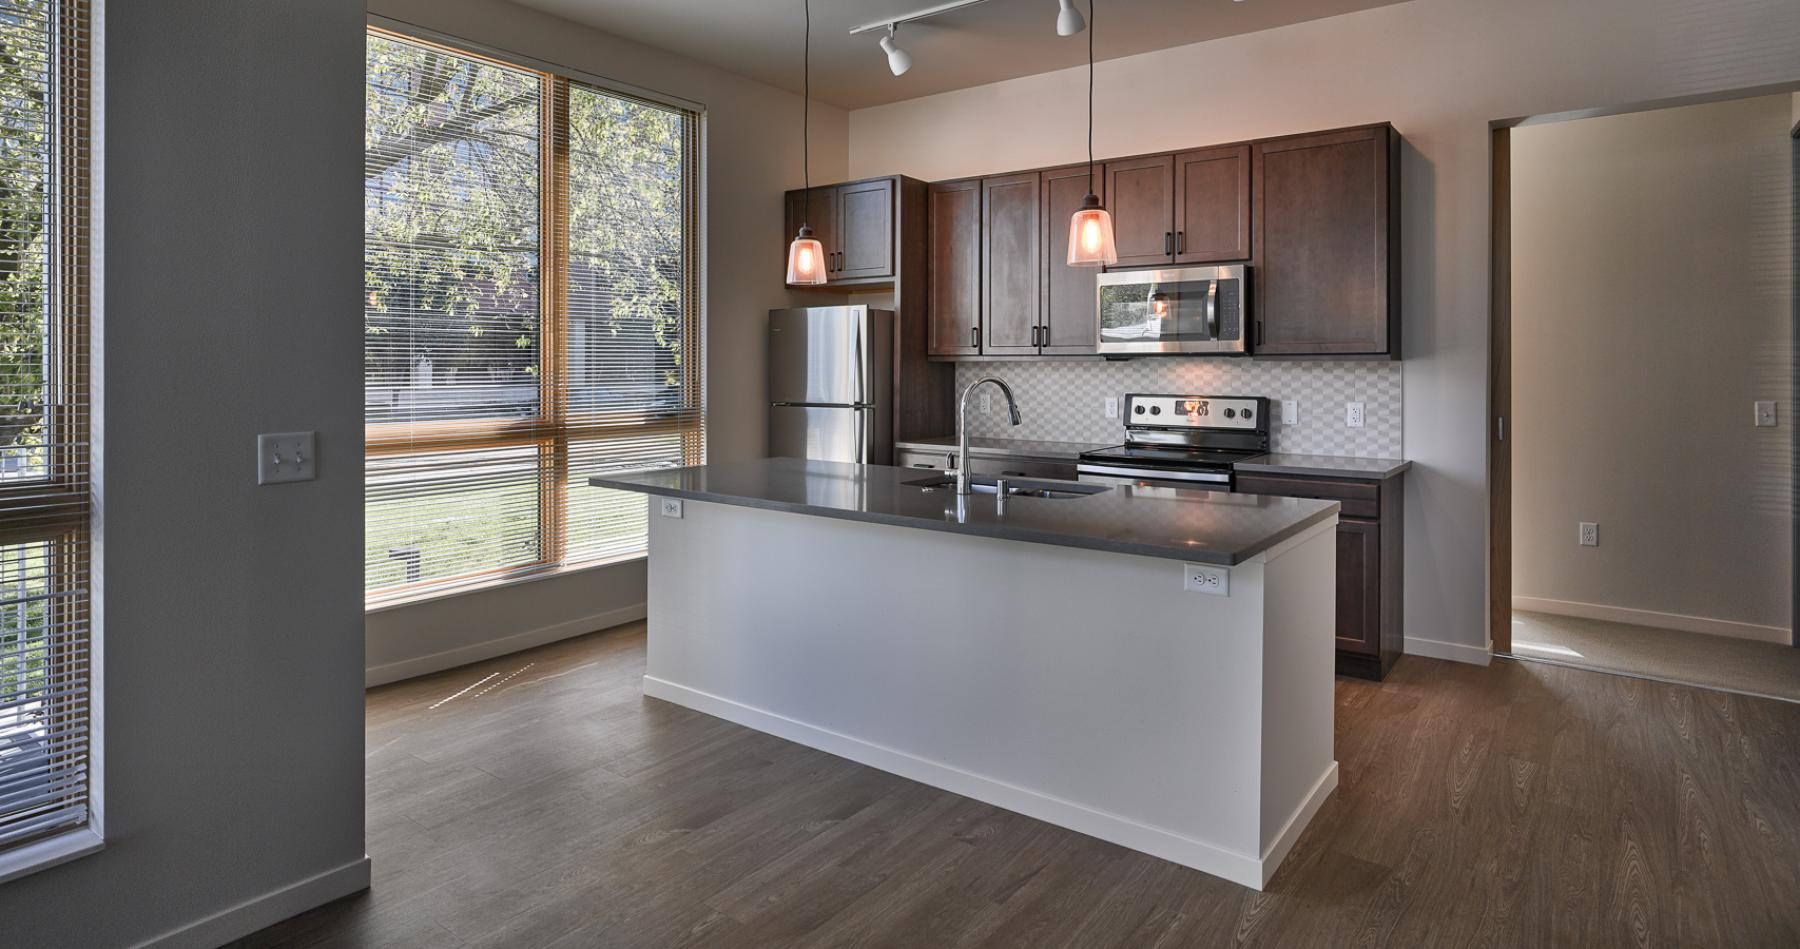 ULI Quarter Row at the Yards - Kitchen Stainless Steel Appliances